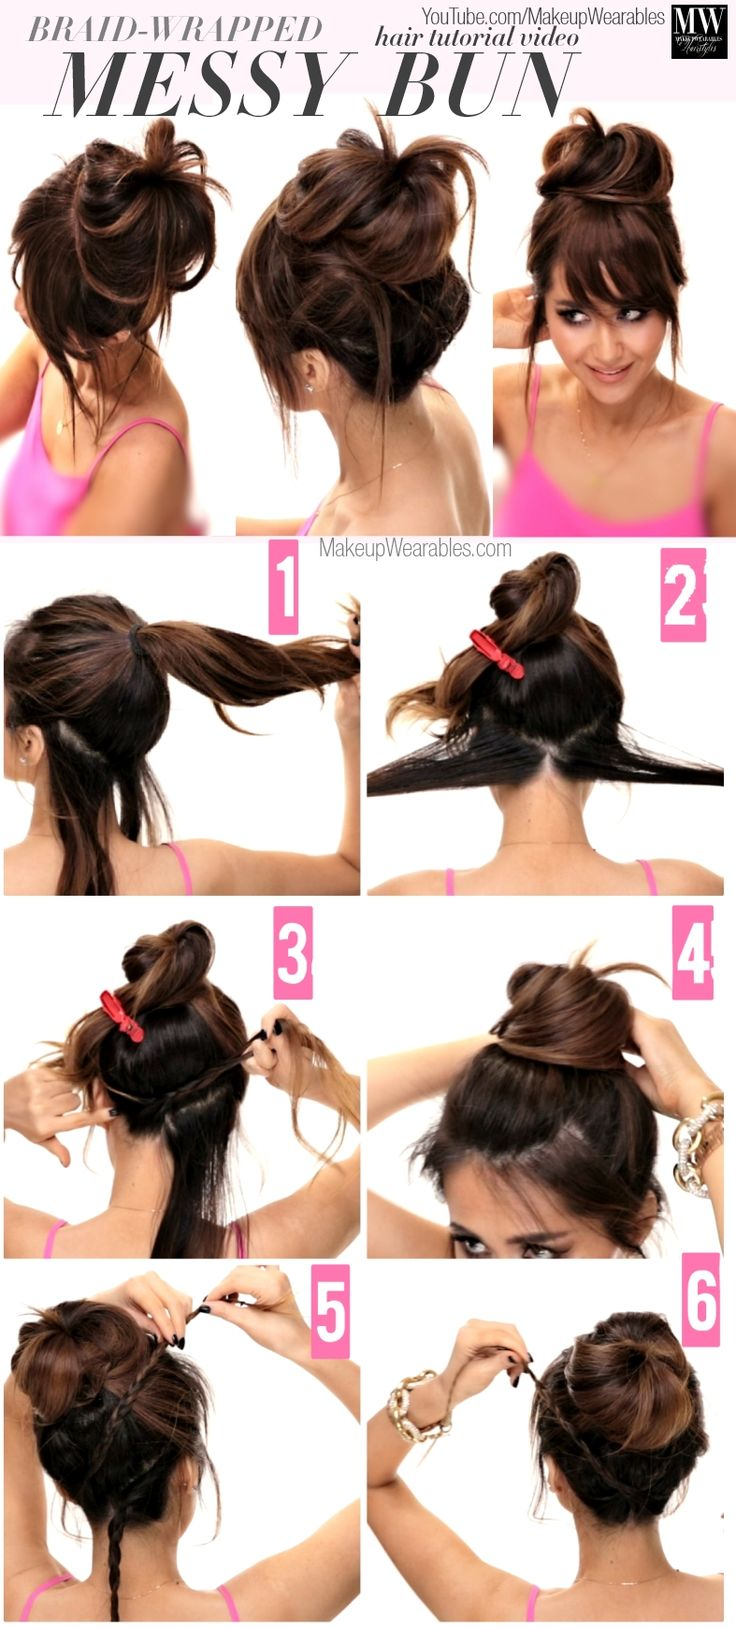 Astounding 1000 Ideas About Cute Messy Buns On Pinterest Messy Buns Messy Hairstyles For Women Draintrainus